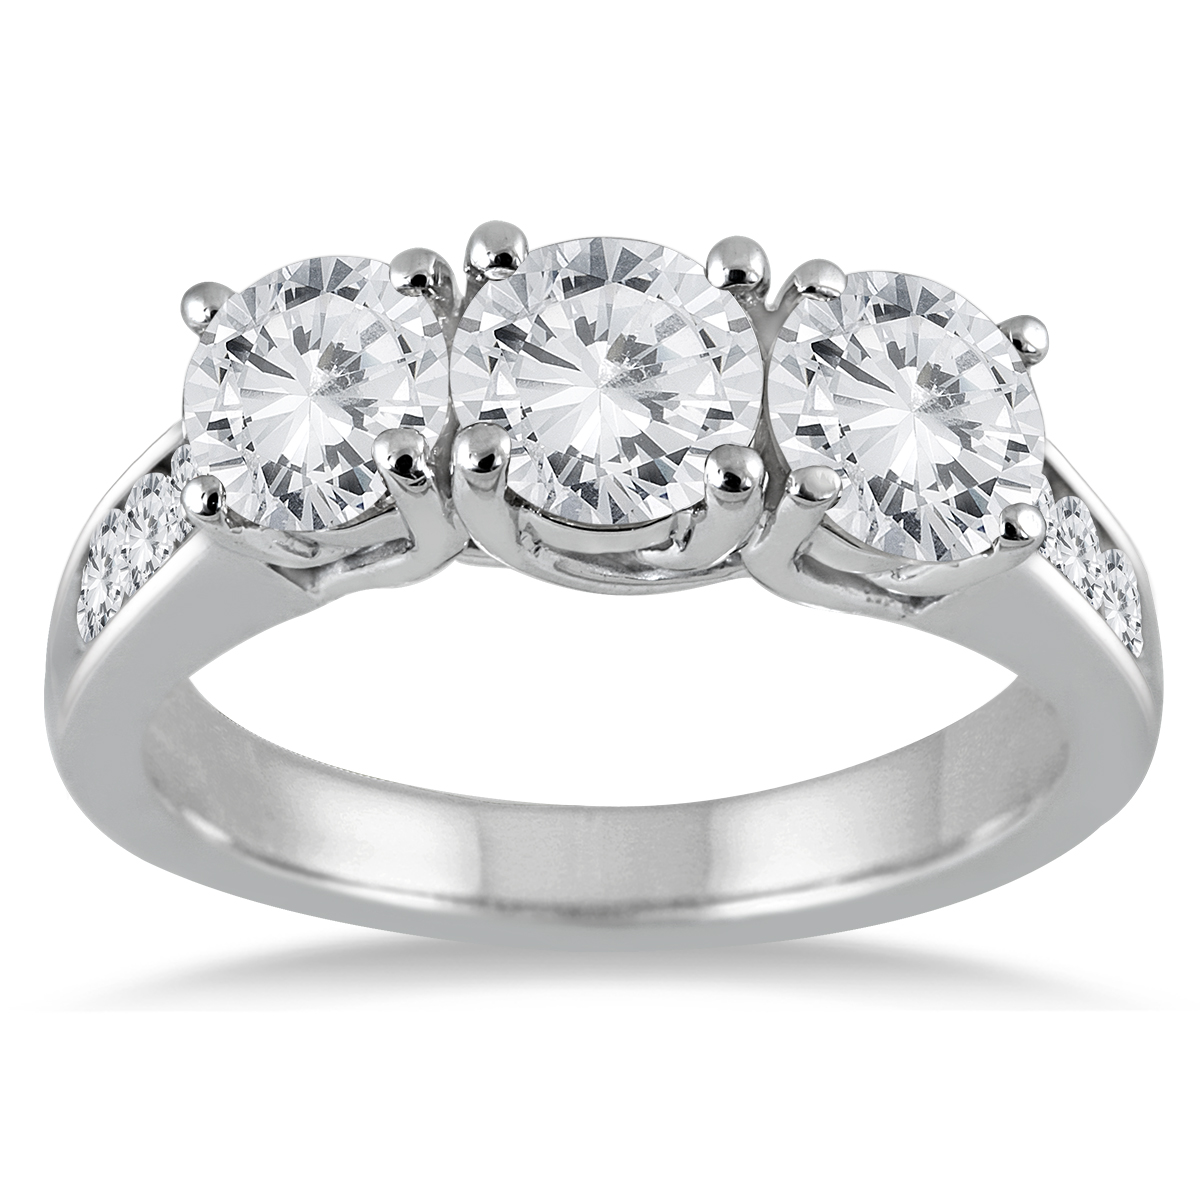 3 Carat TW Diamond Three Stone Ring